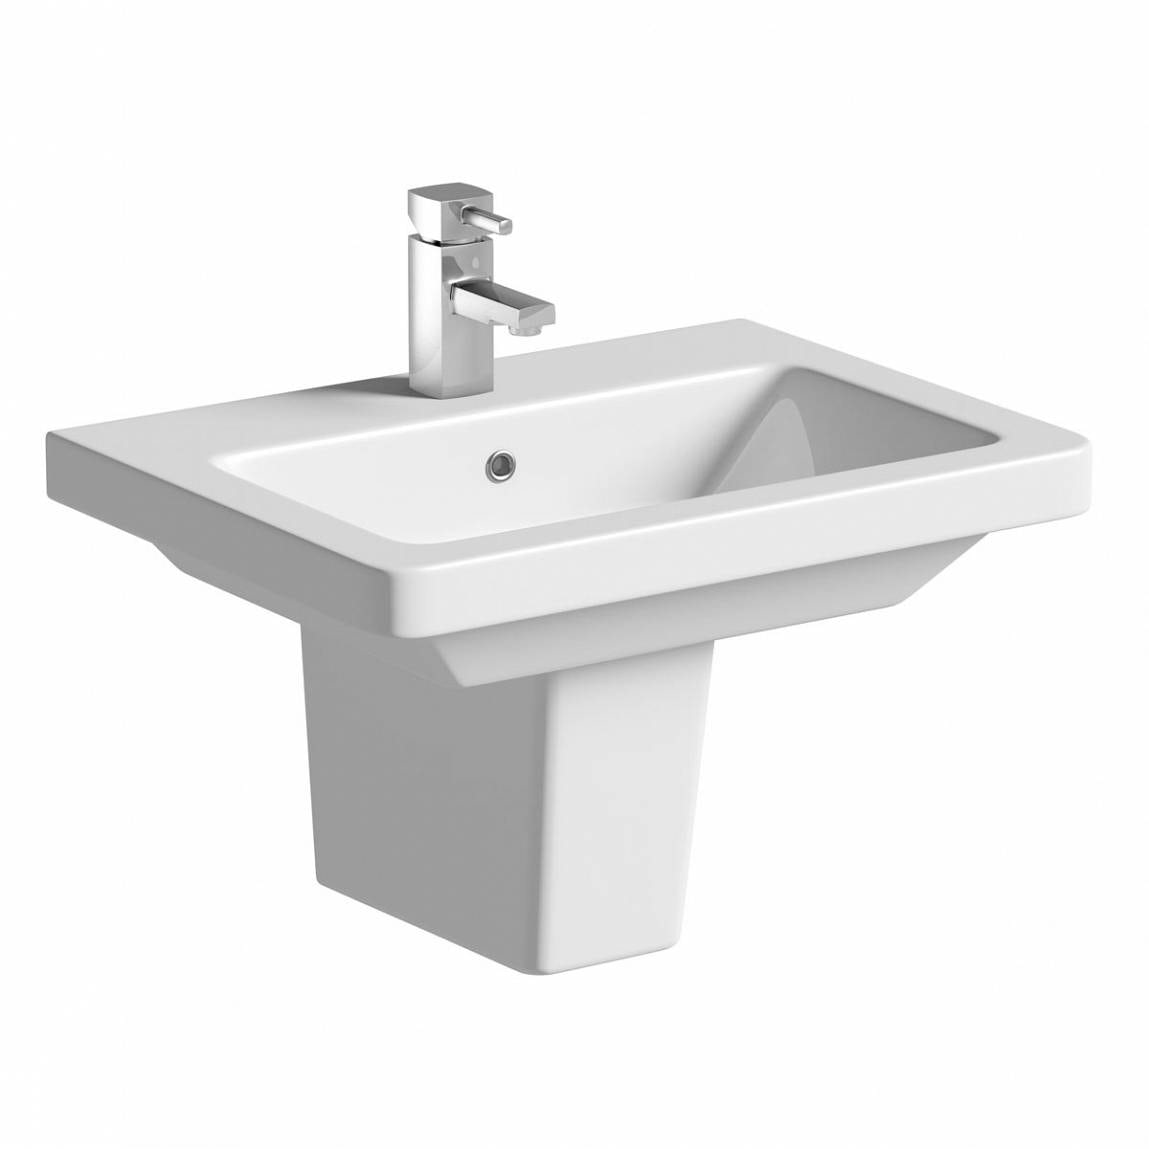 Mode Verso 1 tap hole semi pedestal basin 600mm